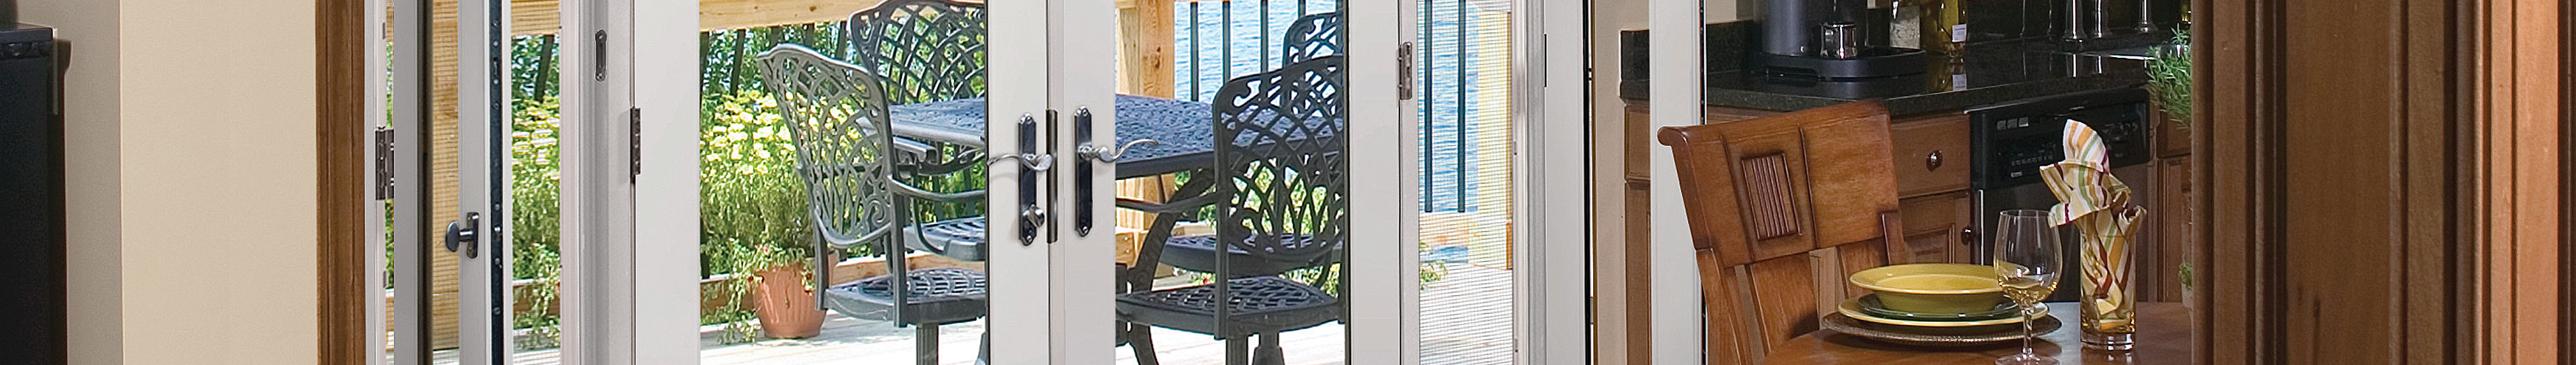 m dooronly products design doors patio manufacturer hinged of neuma features